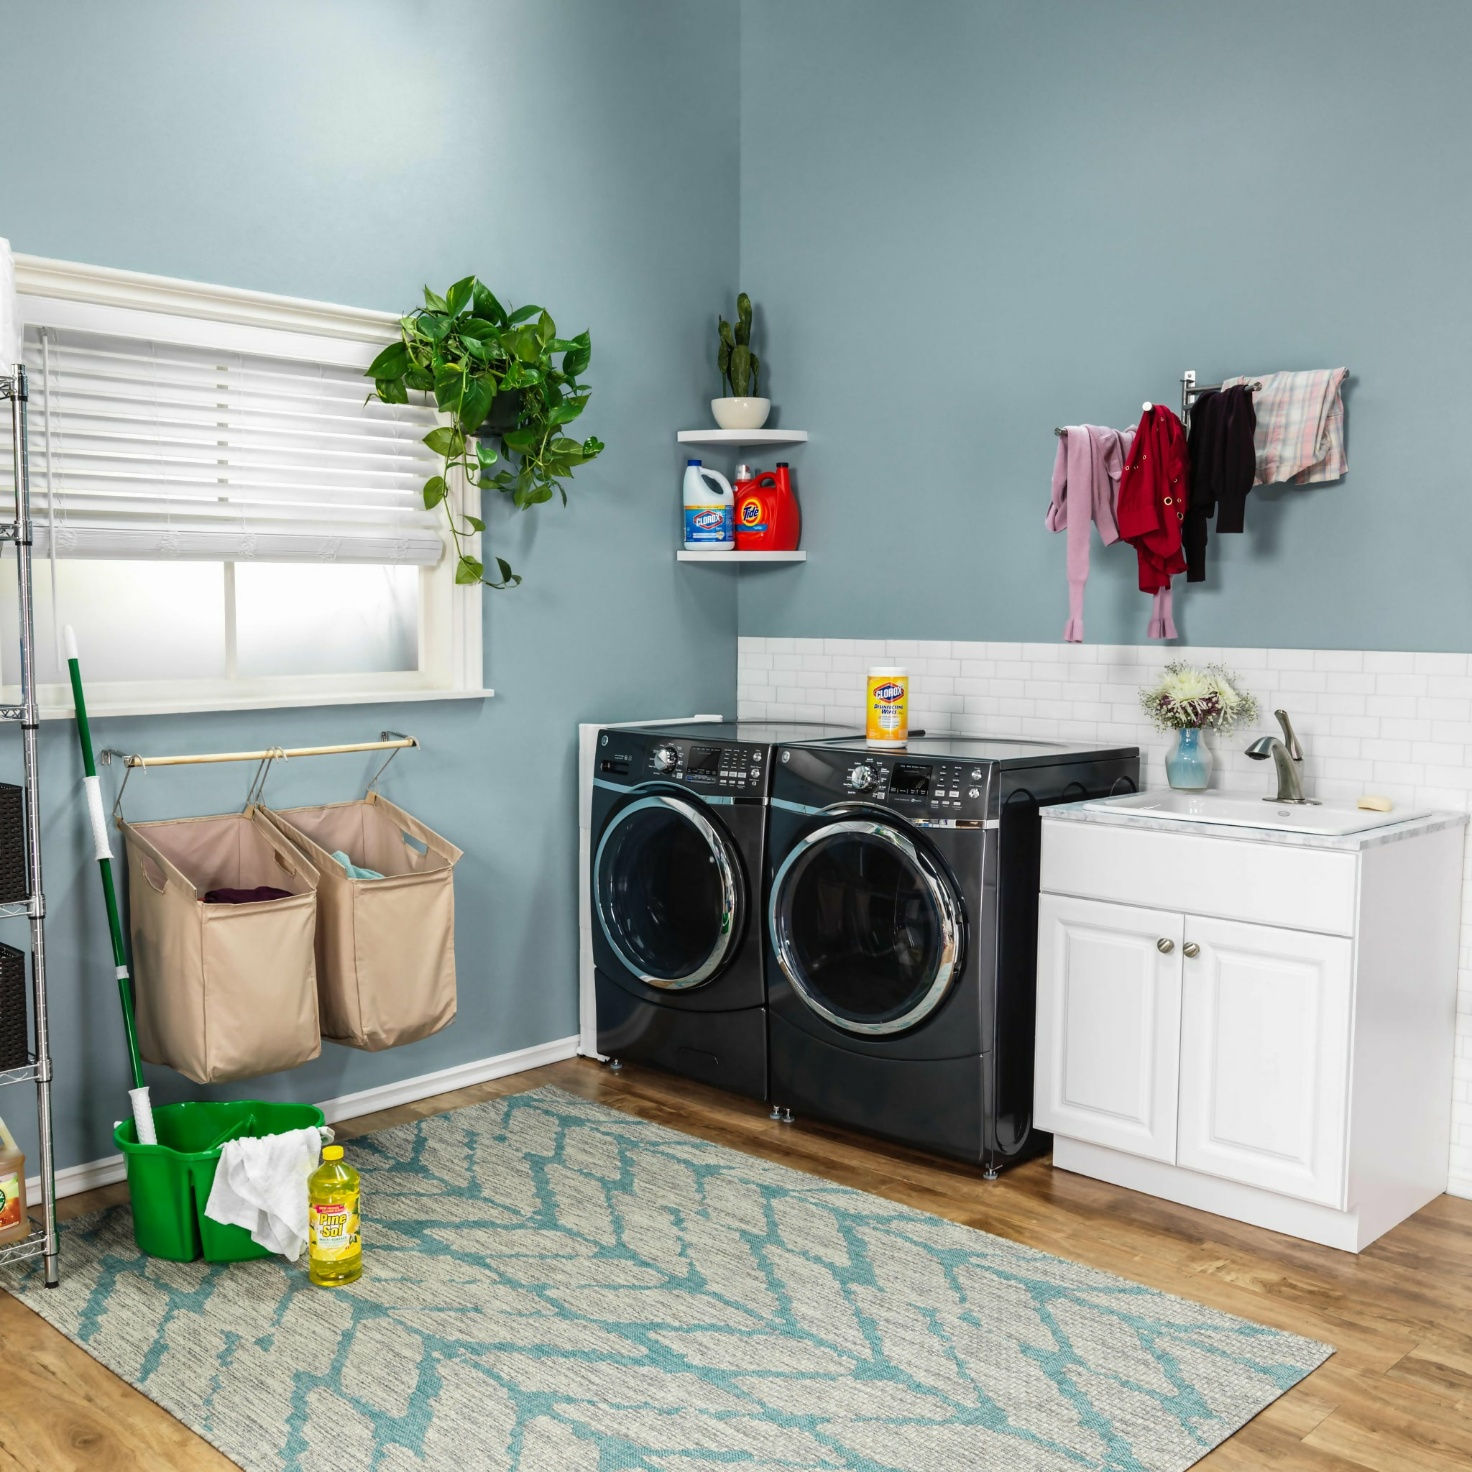 A Laundry Room With A Window